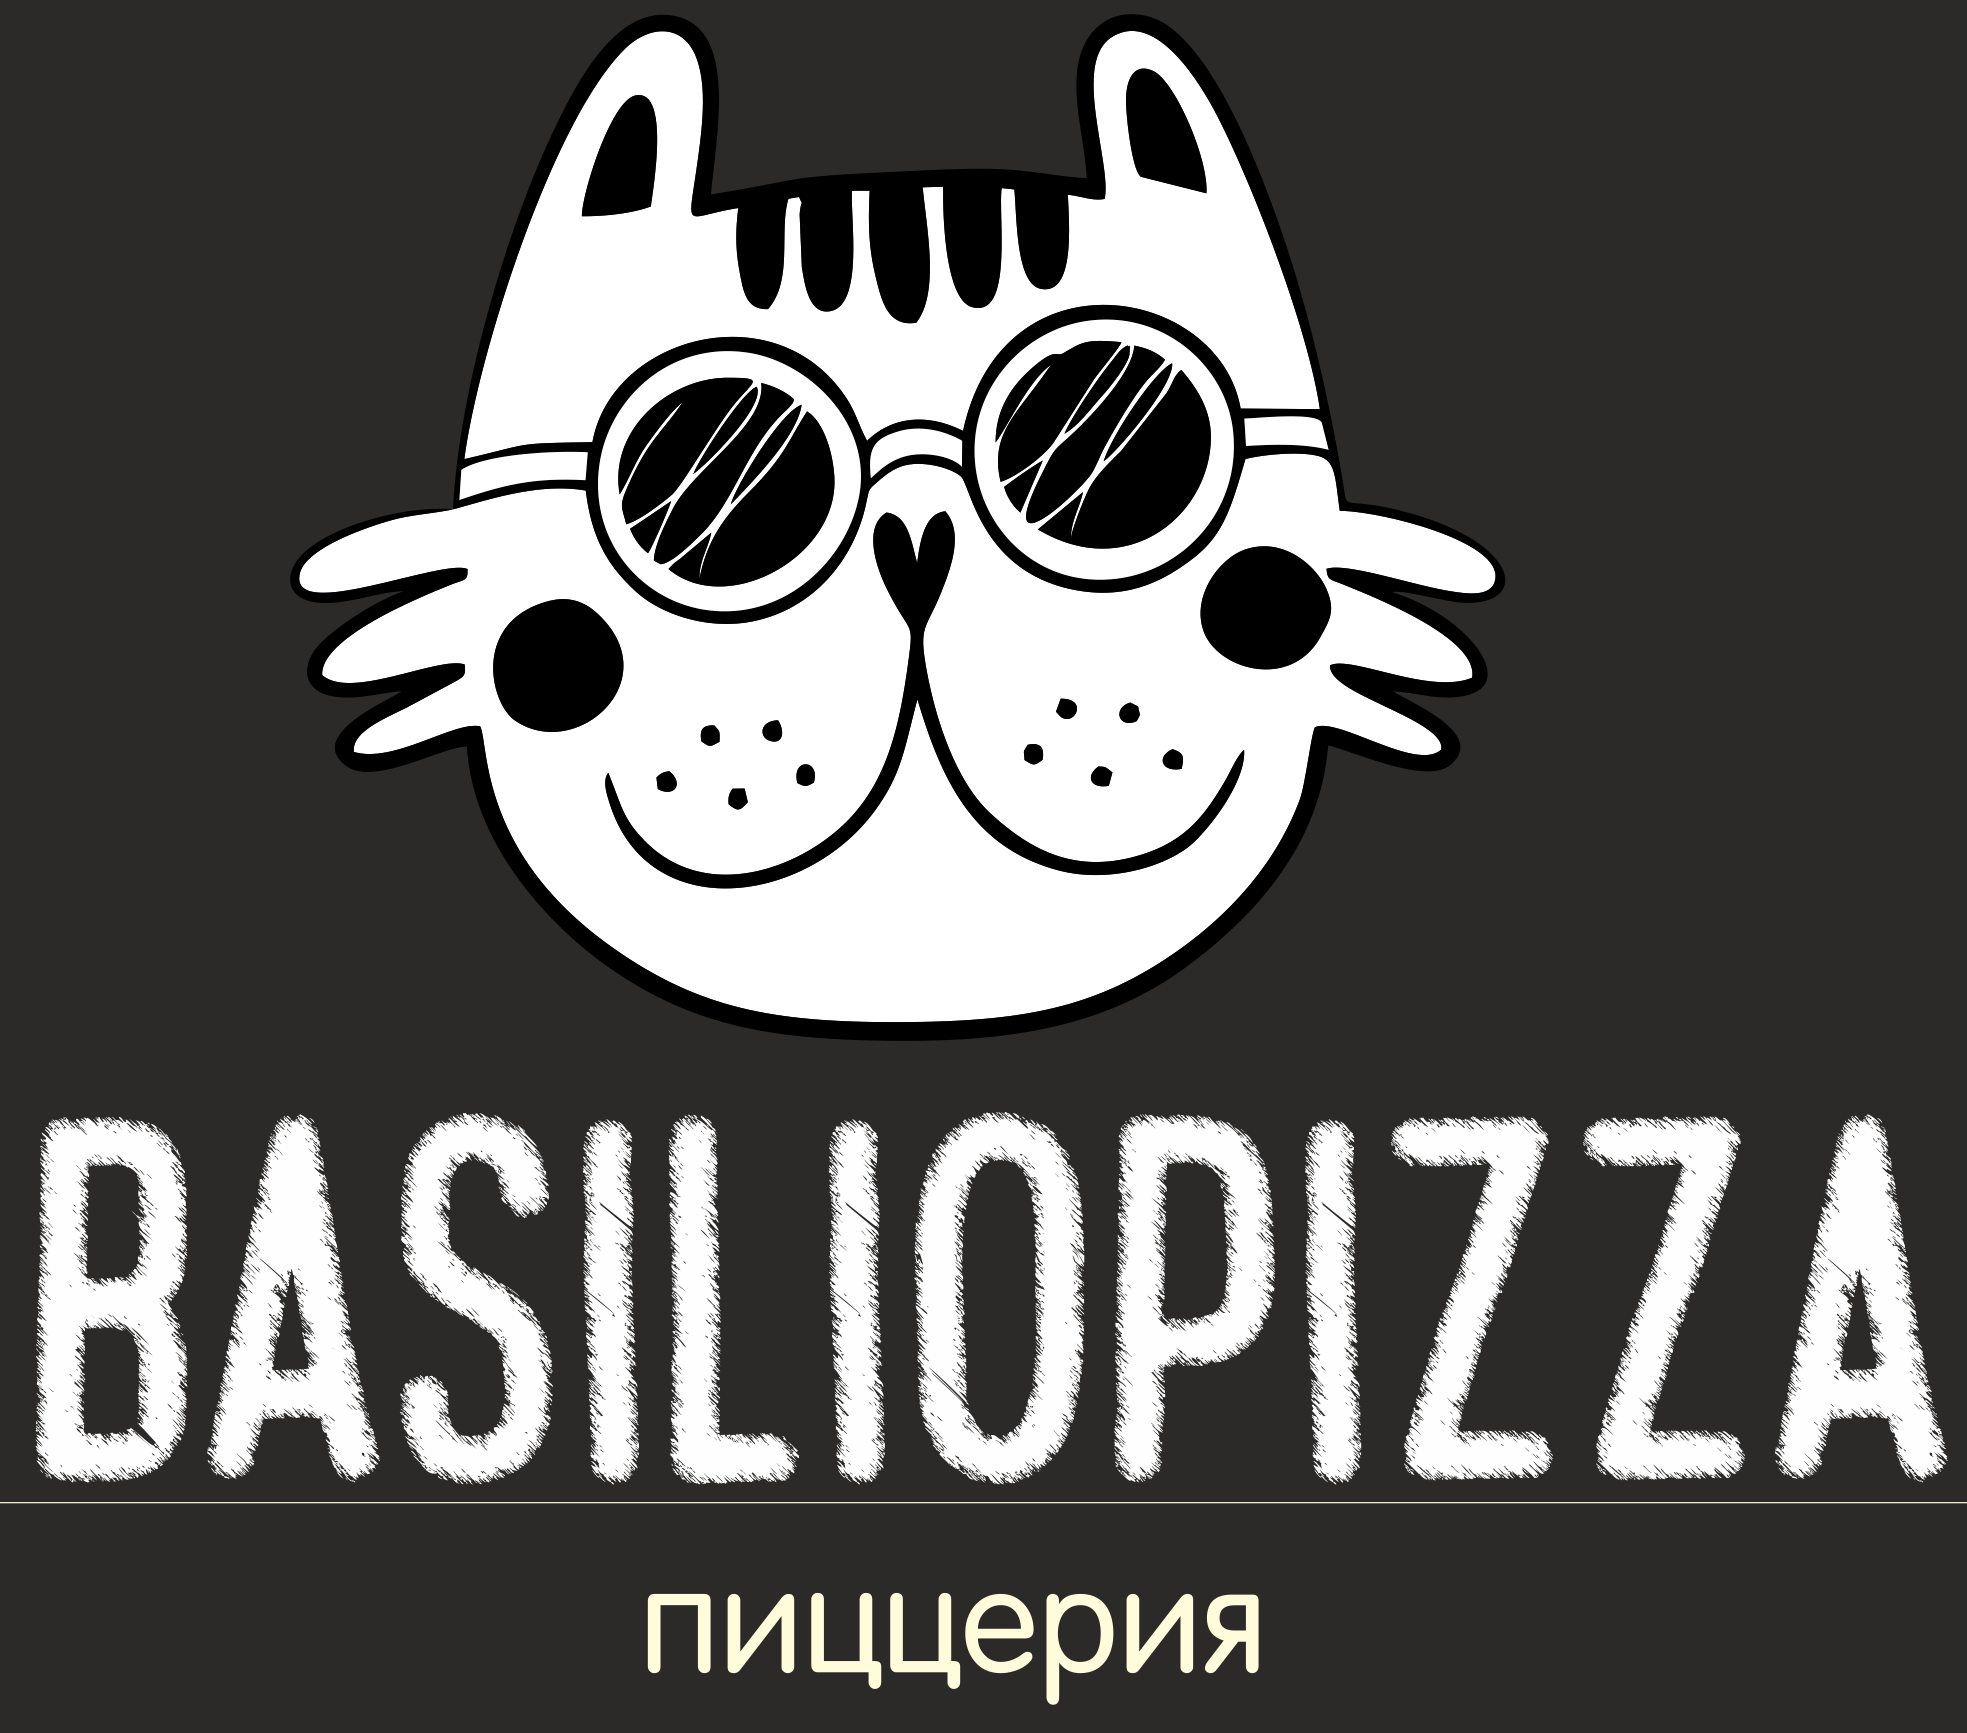 BAZILIOPIZZA